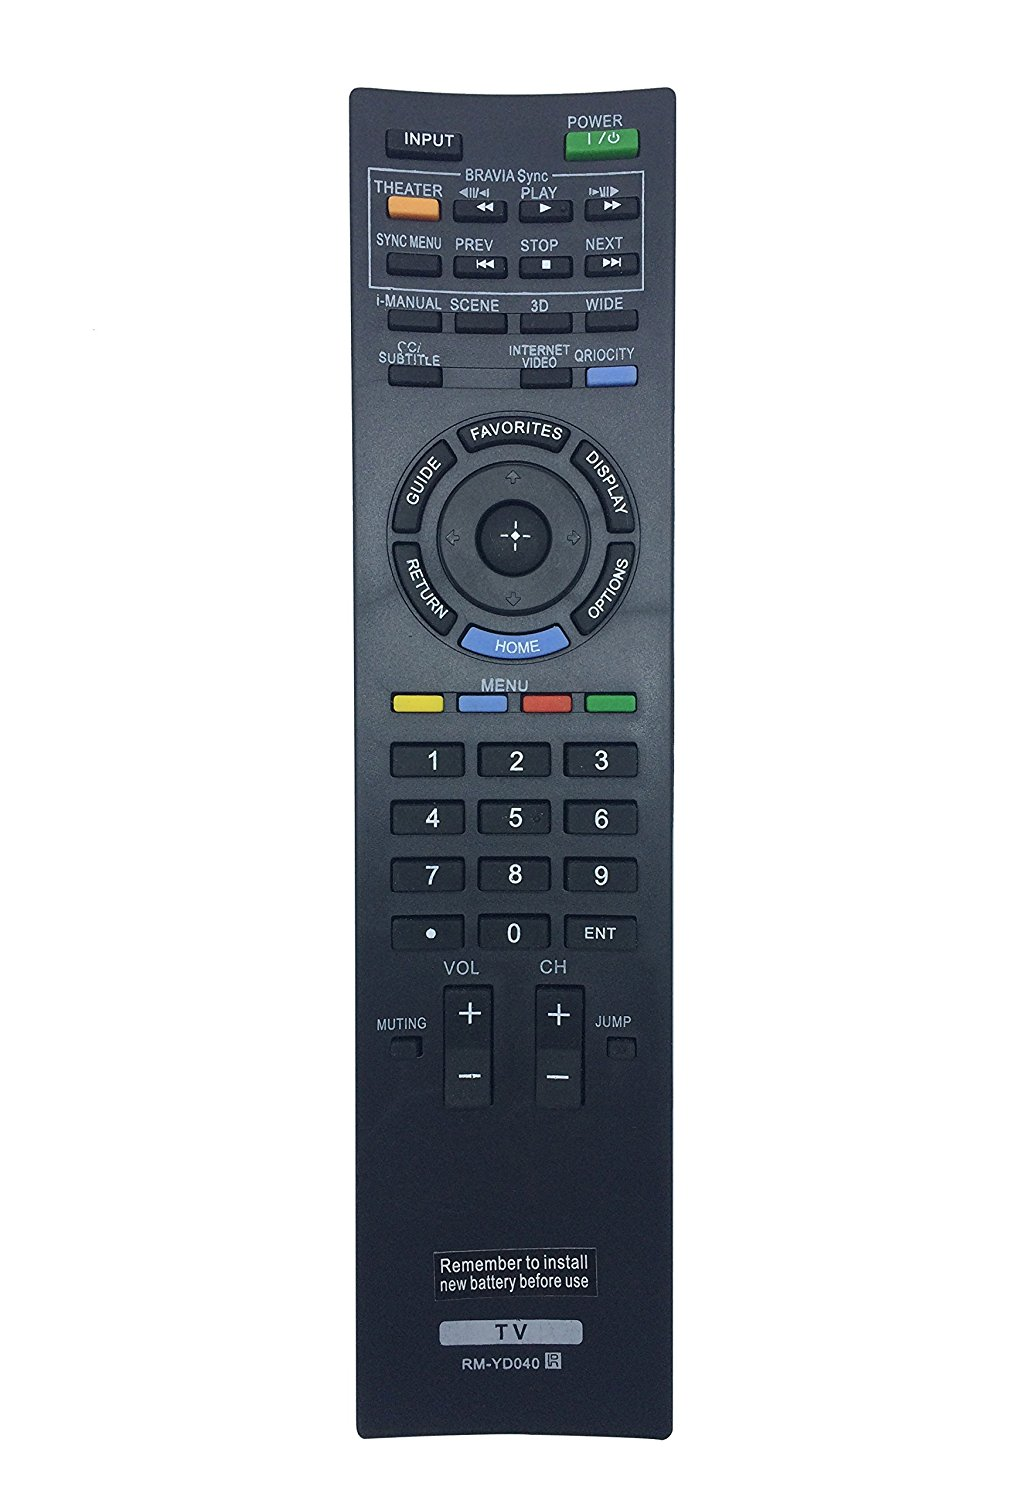 buy vinabty new rm yd040 replaced remote control fit for sony kdl rh guide alibaba com sony kdl55hx800 manual pdf sony kdl-55hx800 service manual